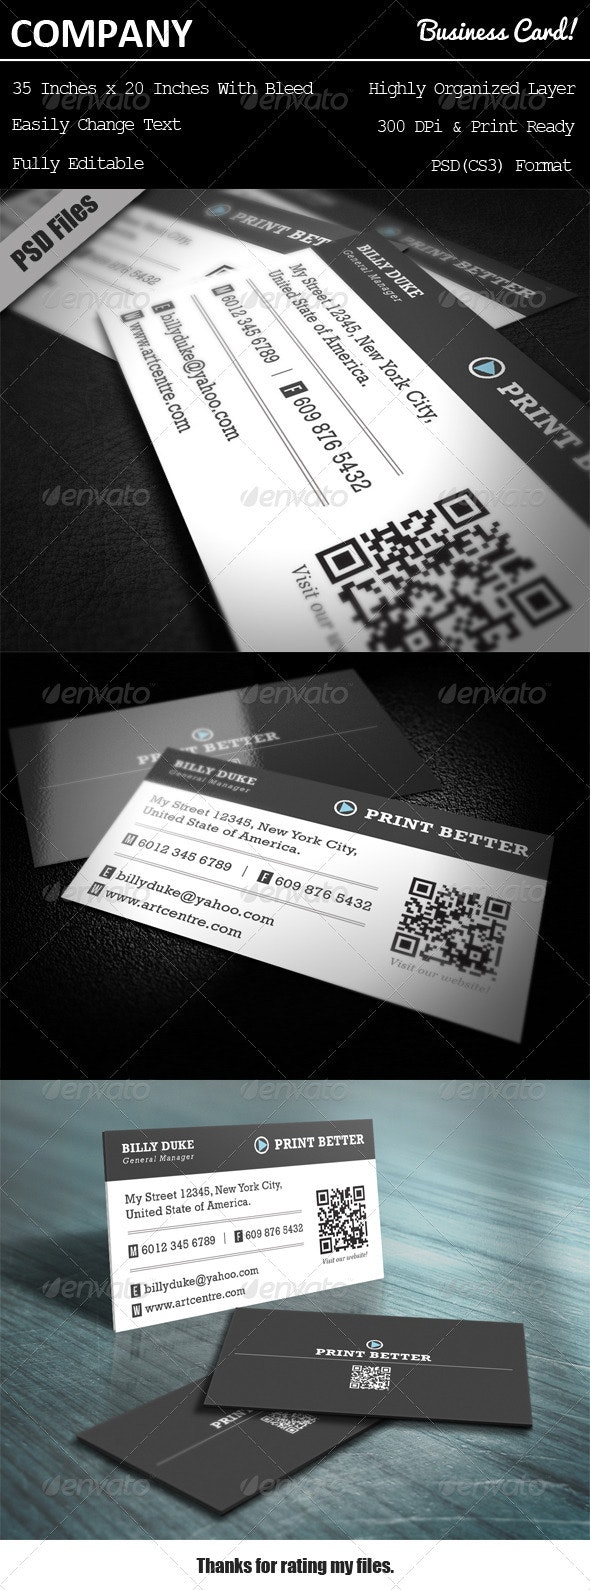 Company Business Card - Corporate Business Cards